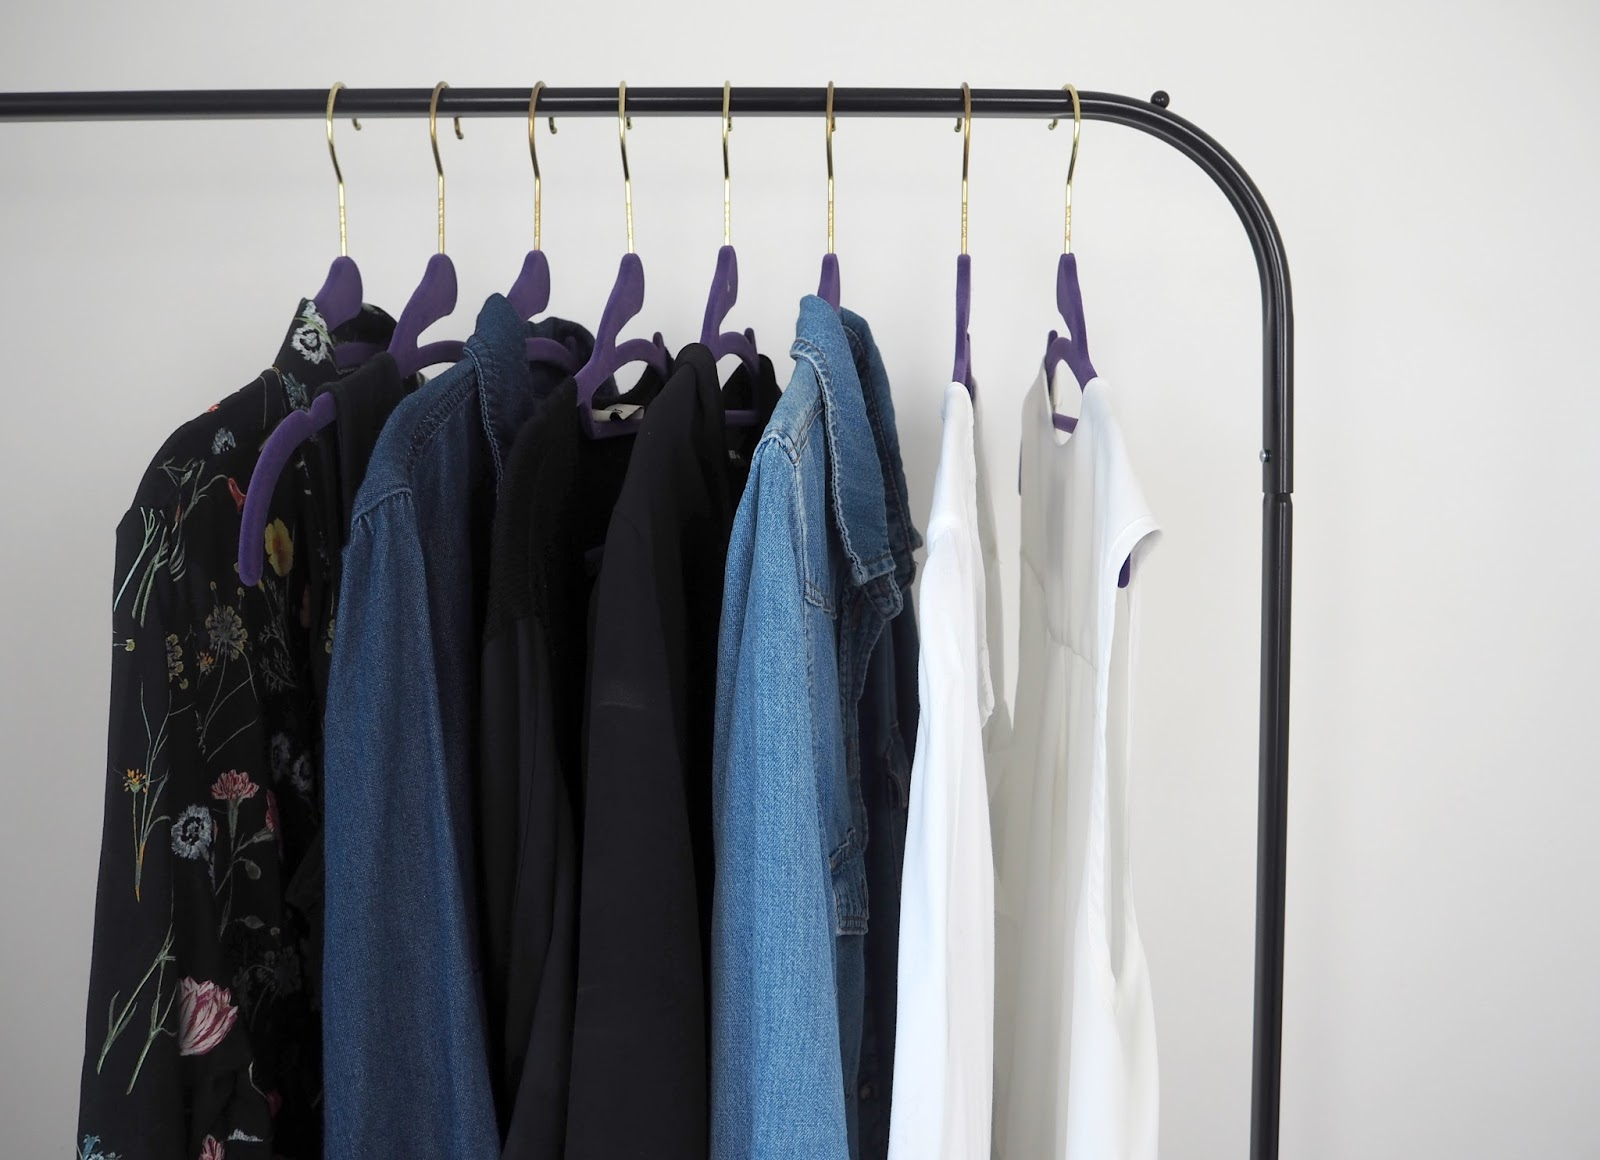 5 tips for organising the clothes in your wardrobe